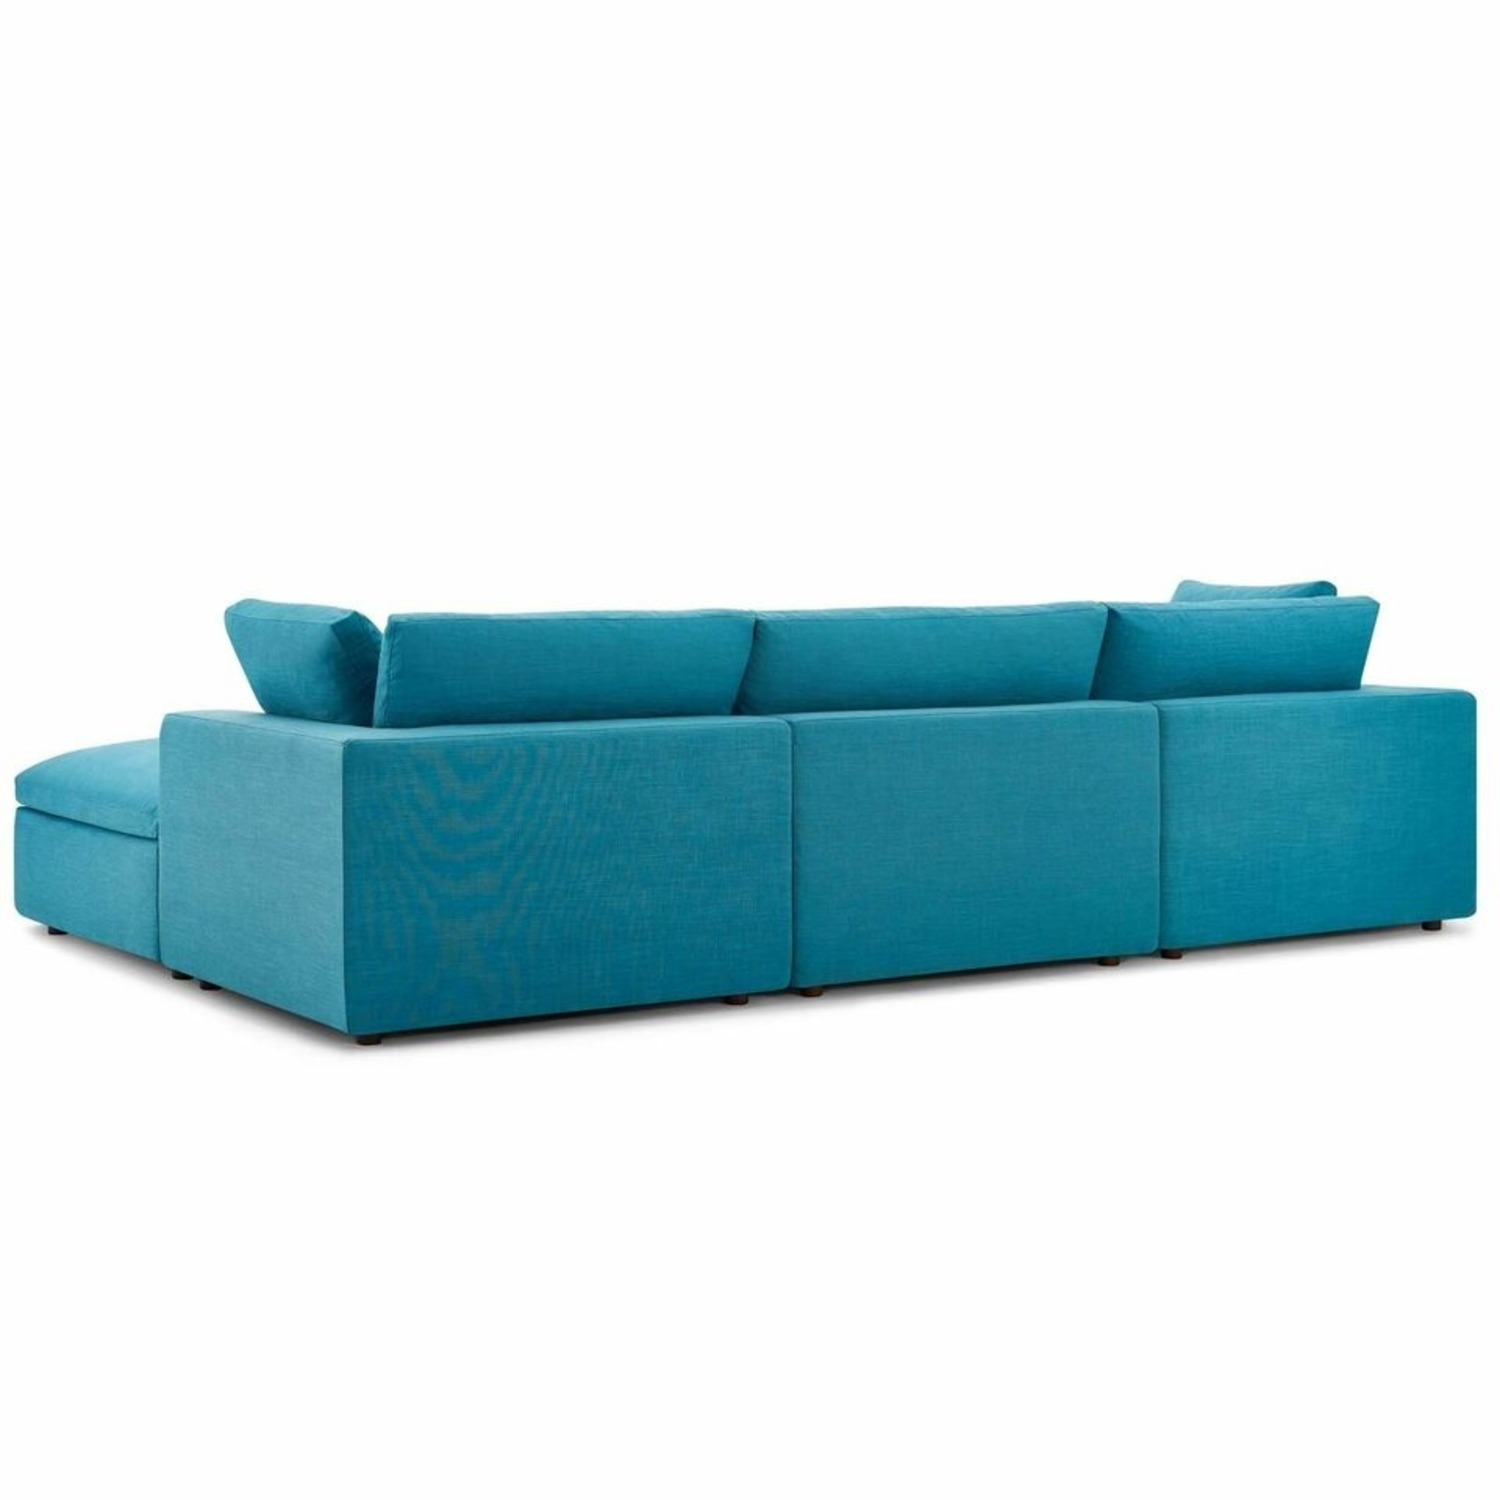 4-Piece Sectional In Teal Polyester & Linen Fabric - image-2